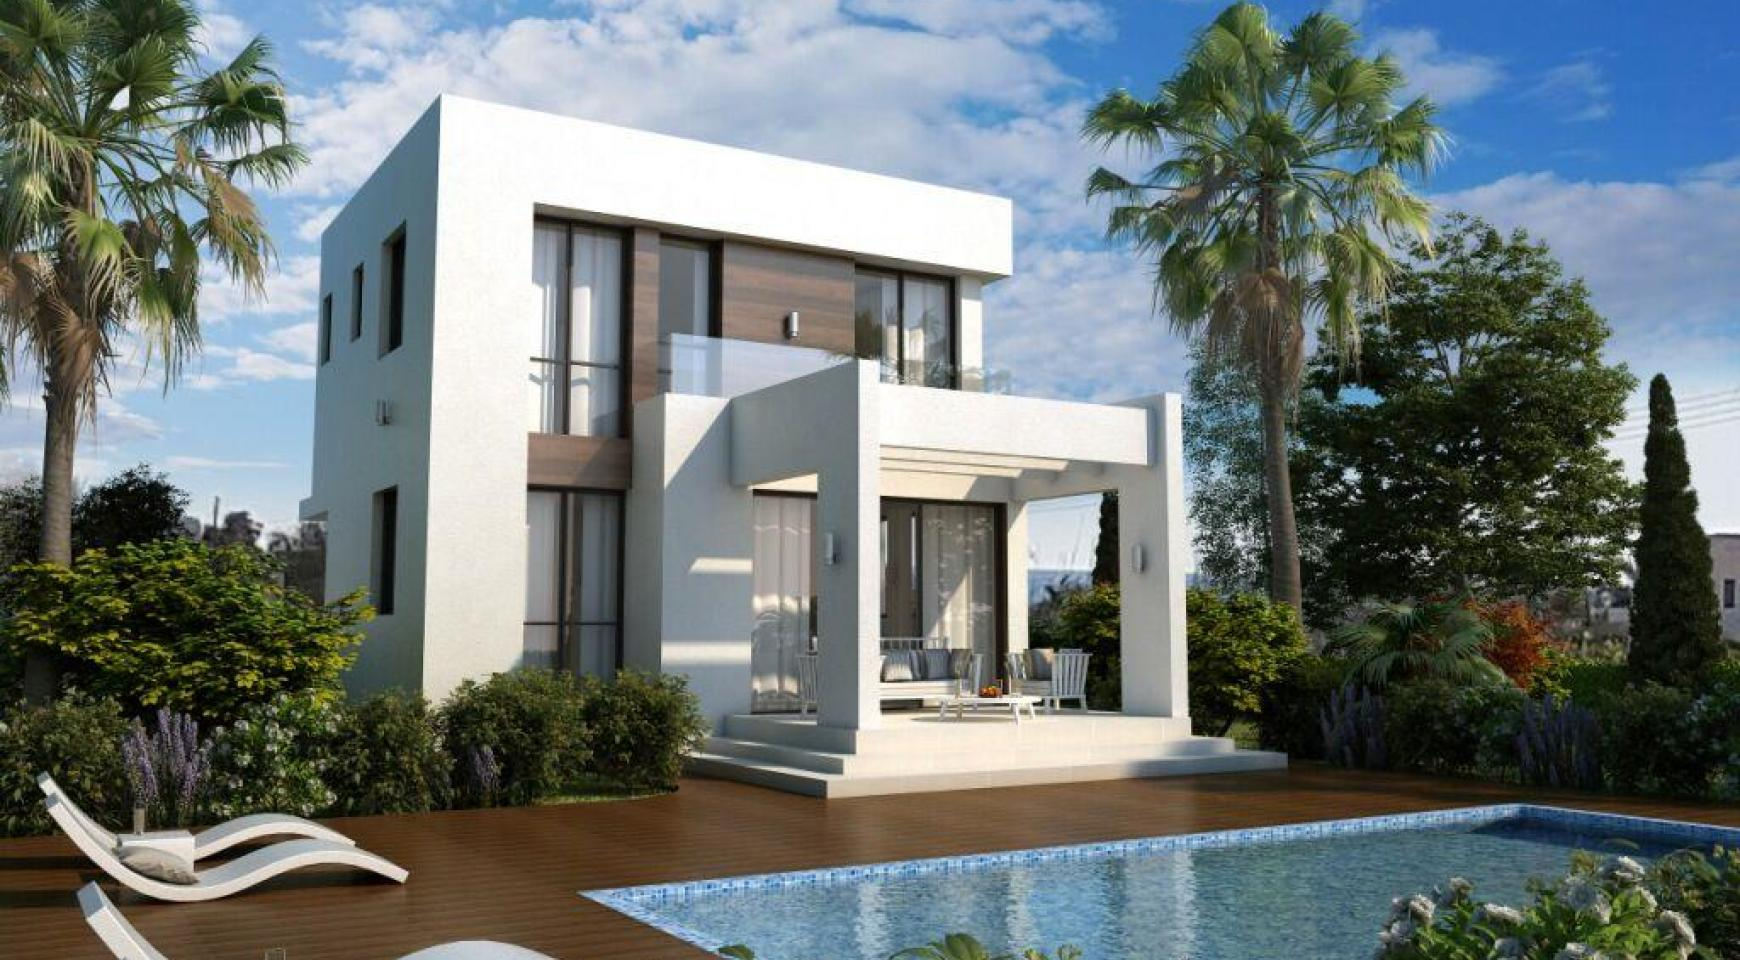 Modern 3 Bedroom Villa in a Complex near the Beach - 11